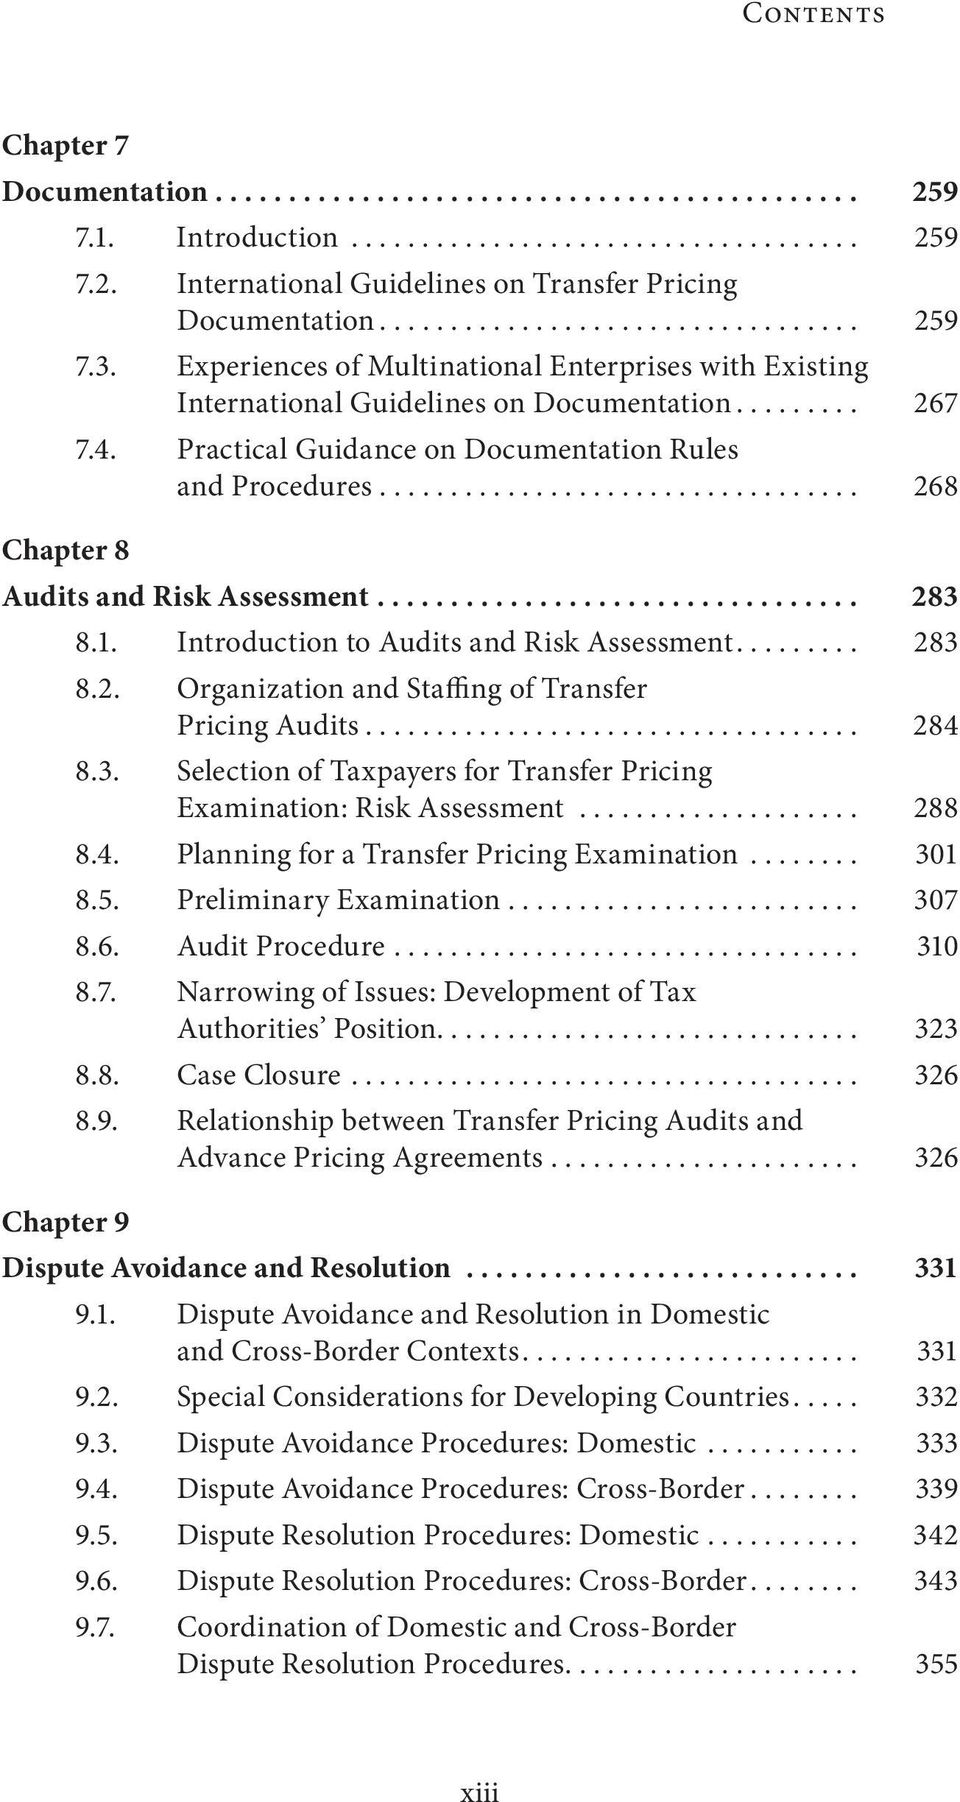 ................................. 268 Chapter 8 Audits and Risk Assessment... 283 8.1. Introduction to Audits and Risk Assessment.... 283 8.2. Organization and Staffing of Transfer Pricing Audits.